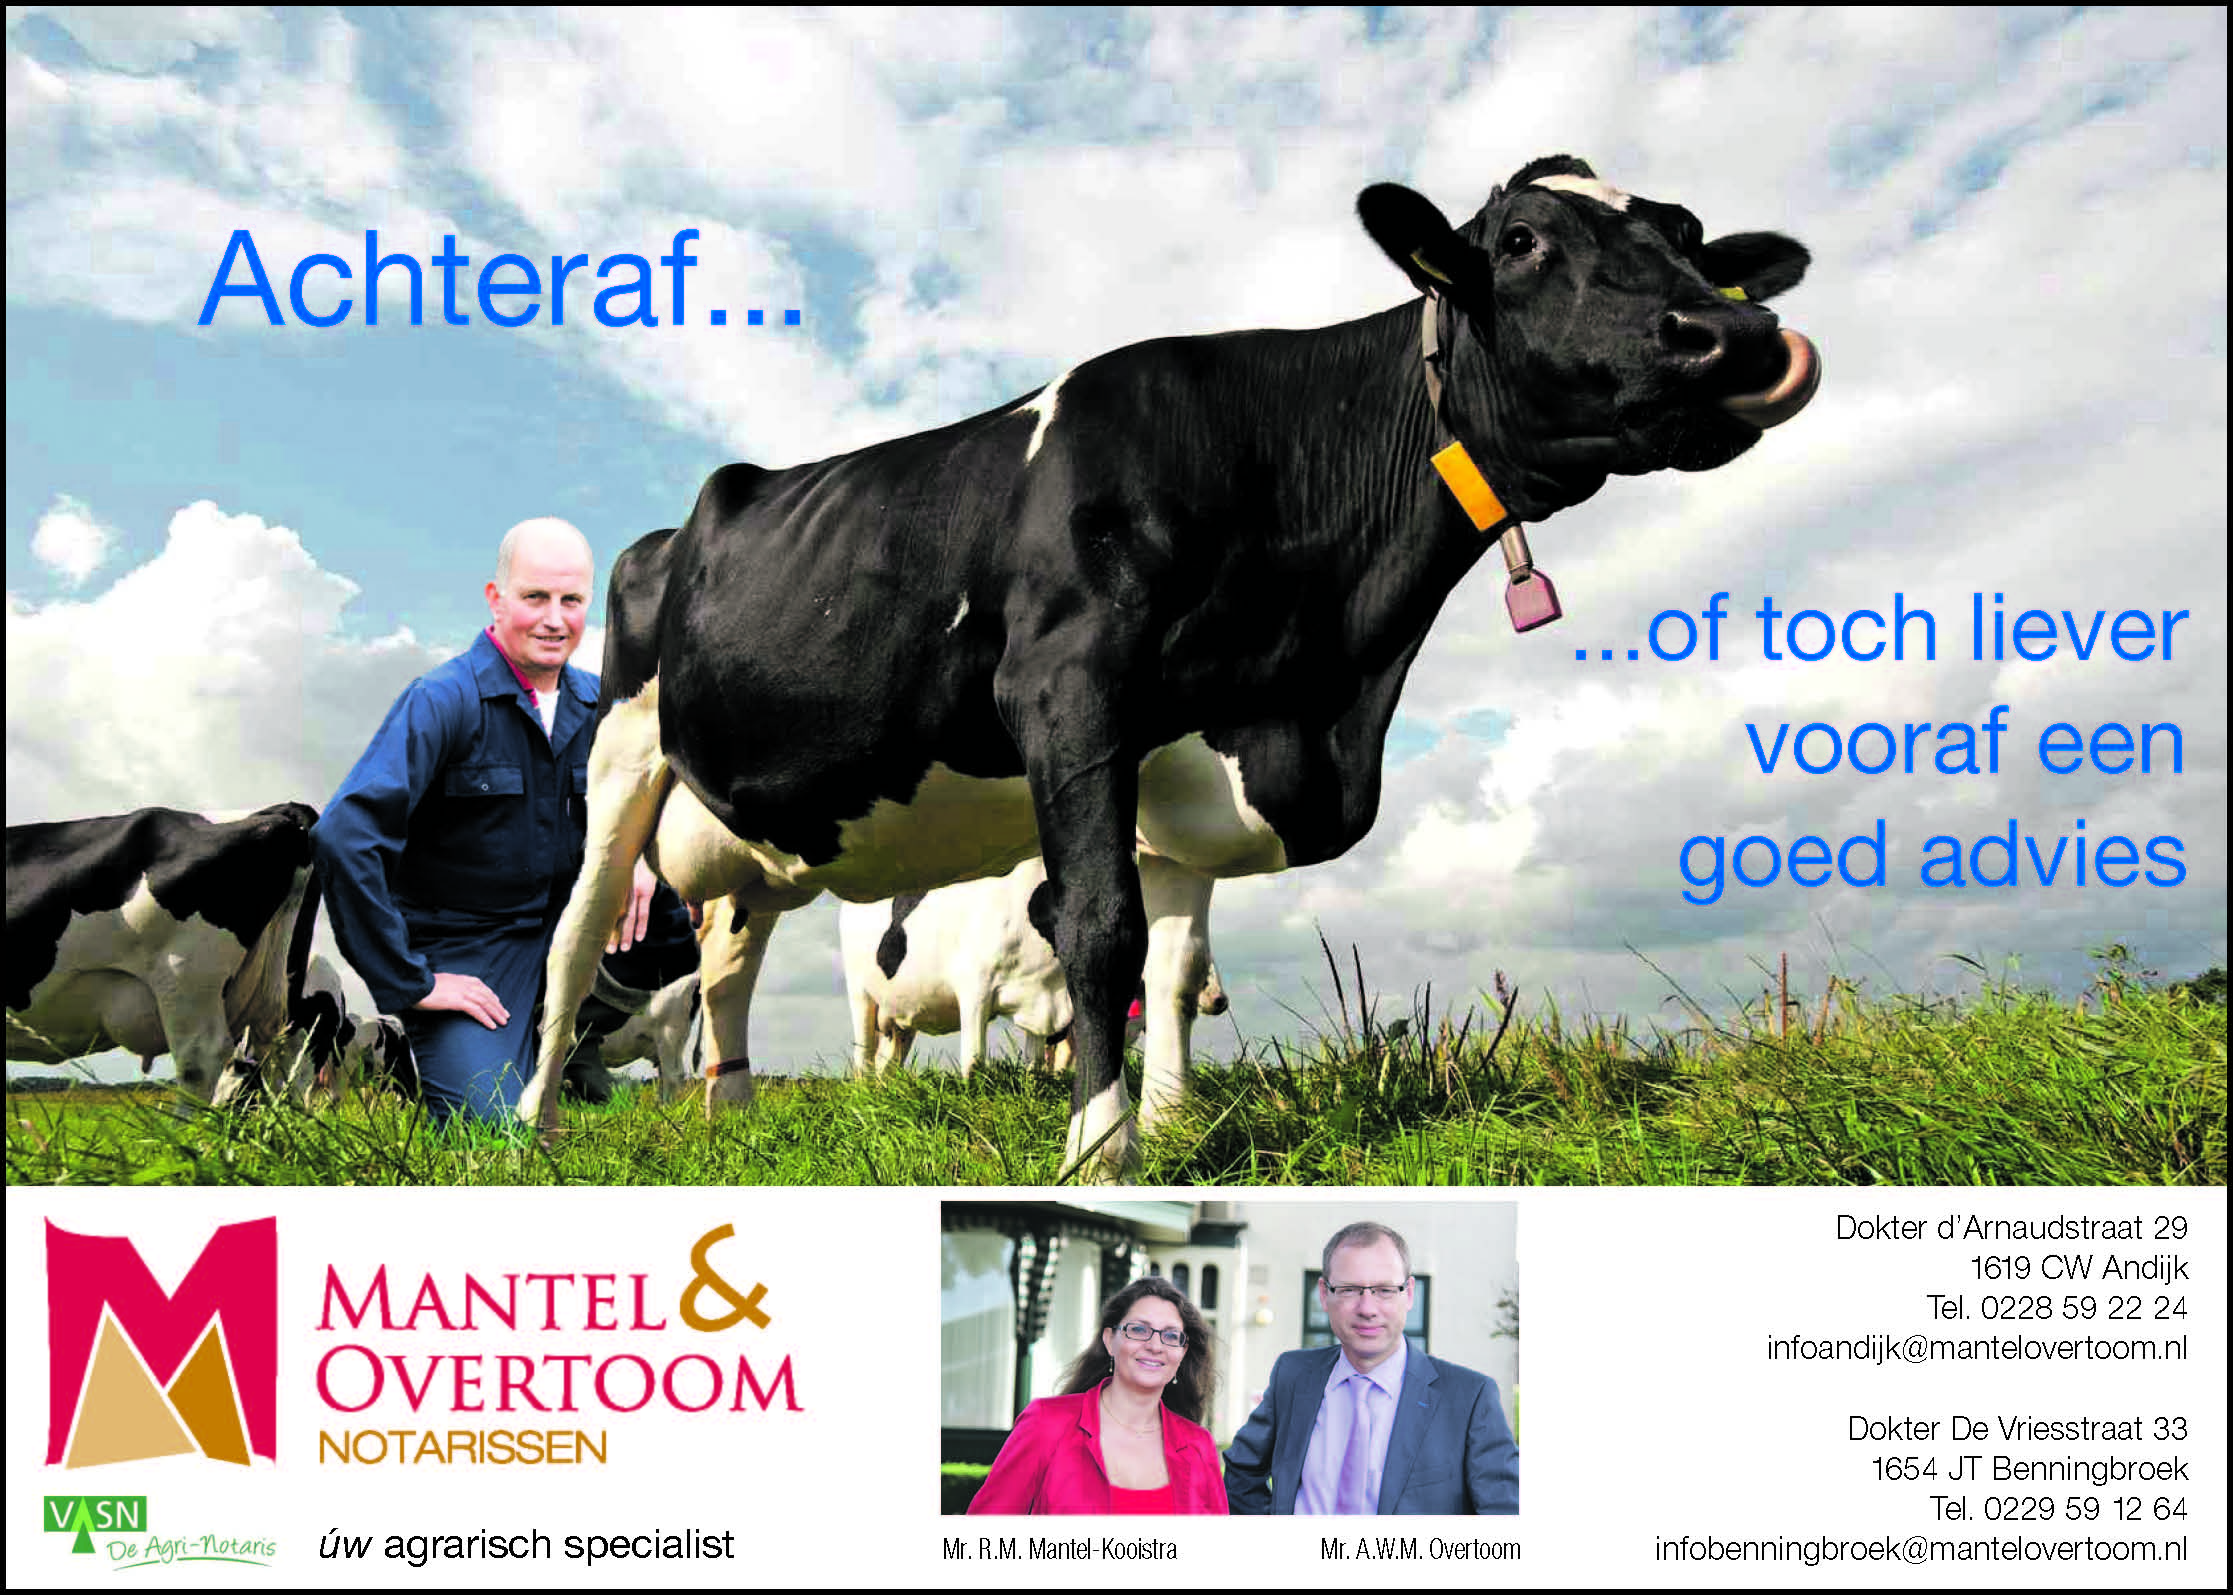 Achteraf… Mantel&Overtoom